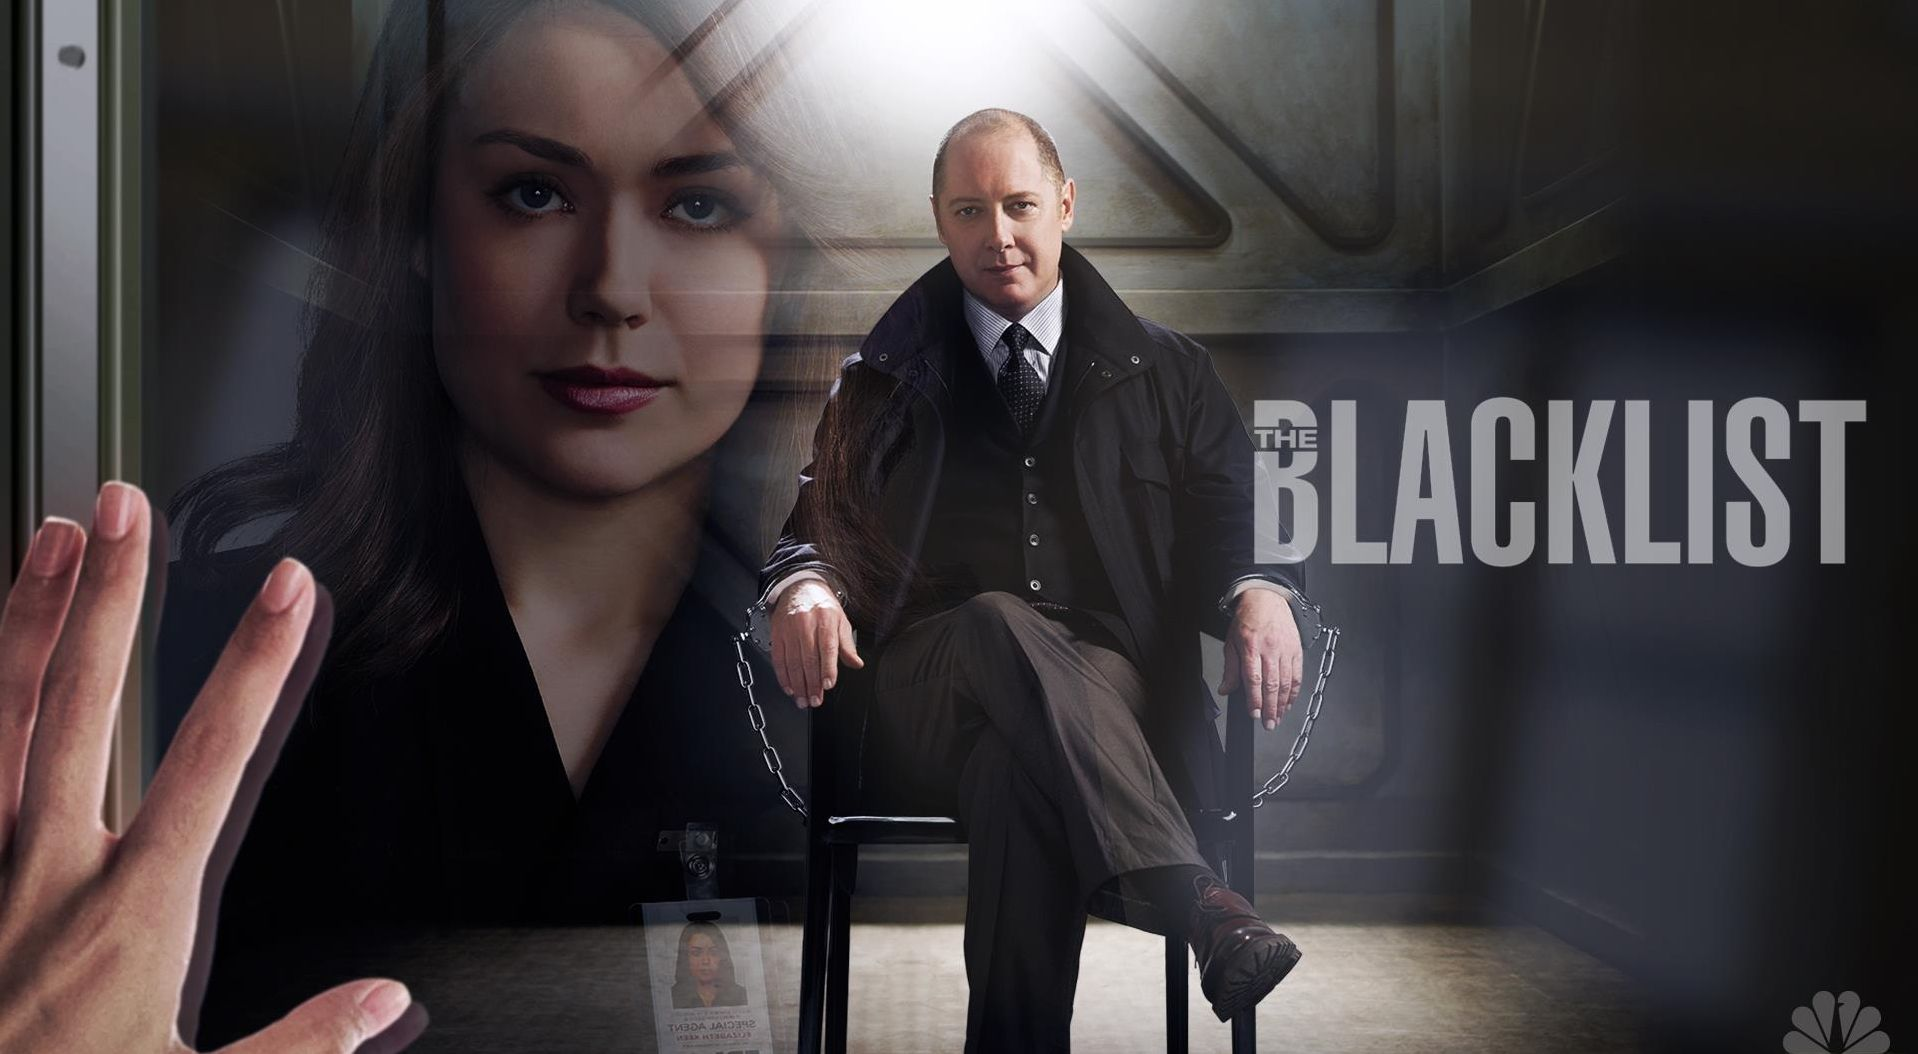 The Blacklist S1Ep19 The Pavlovich Brothers (No. 119–122) Review